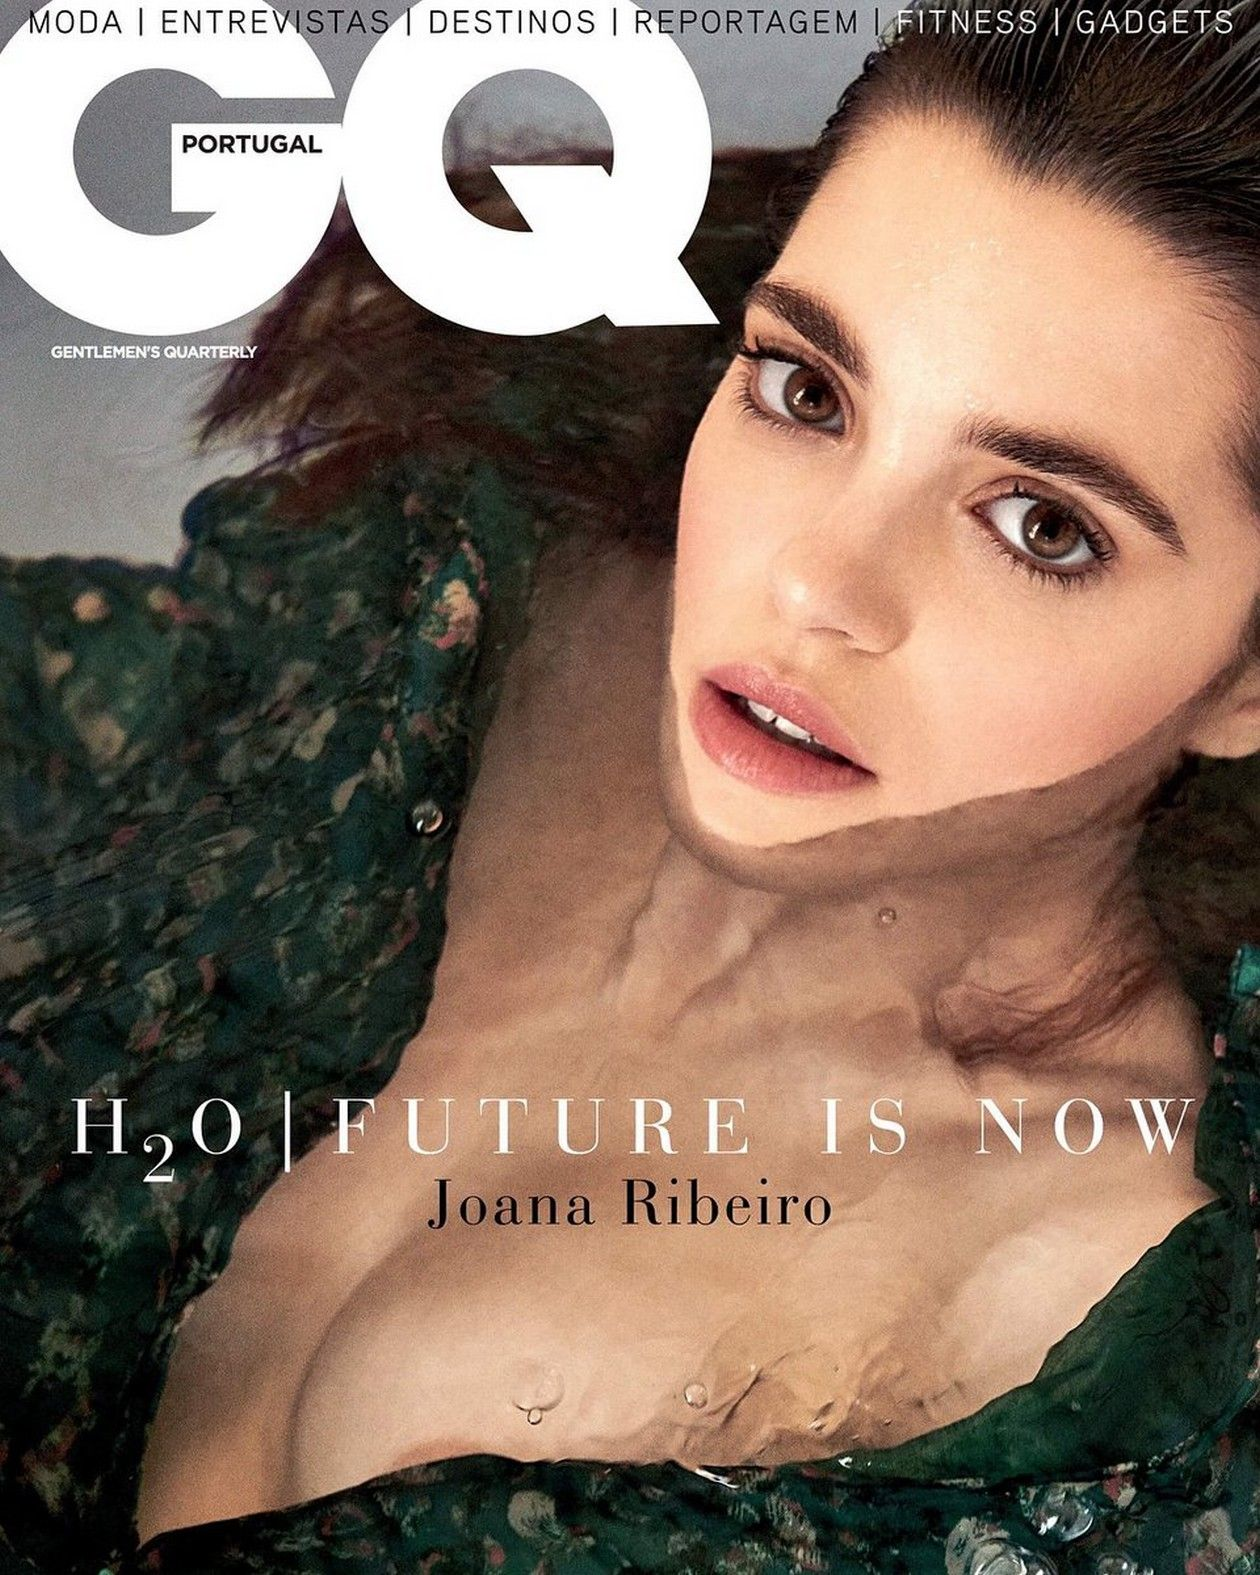 Joana Ribeiro actress GQ MAGAZINE 2018